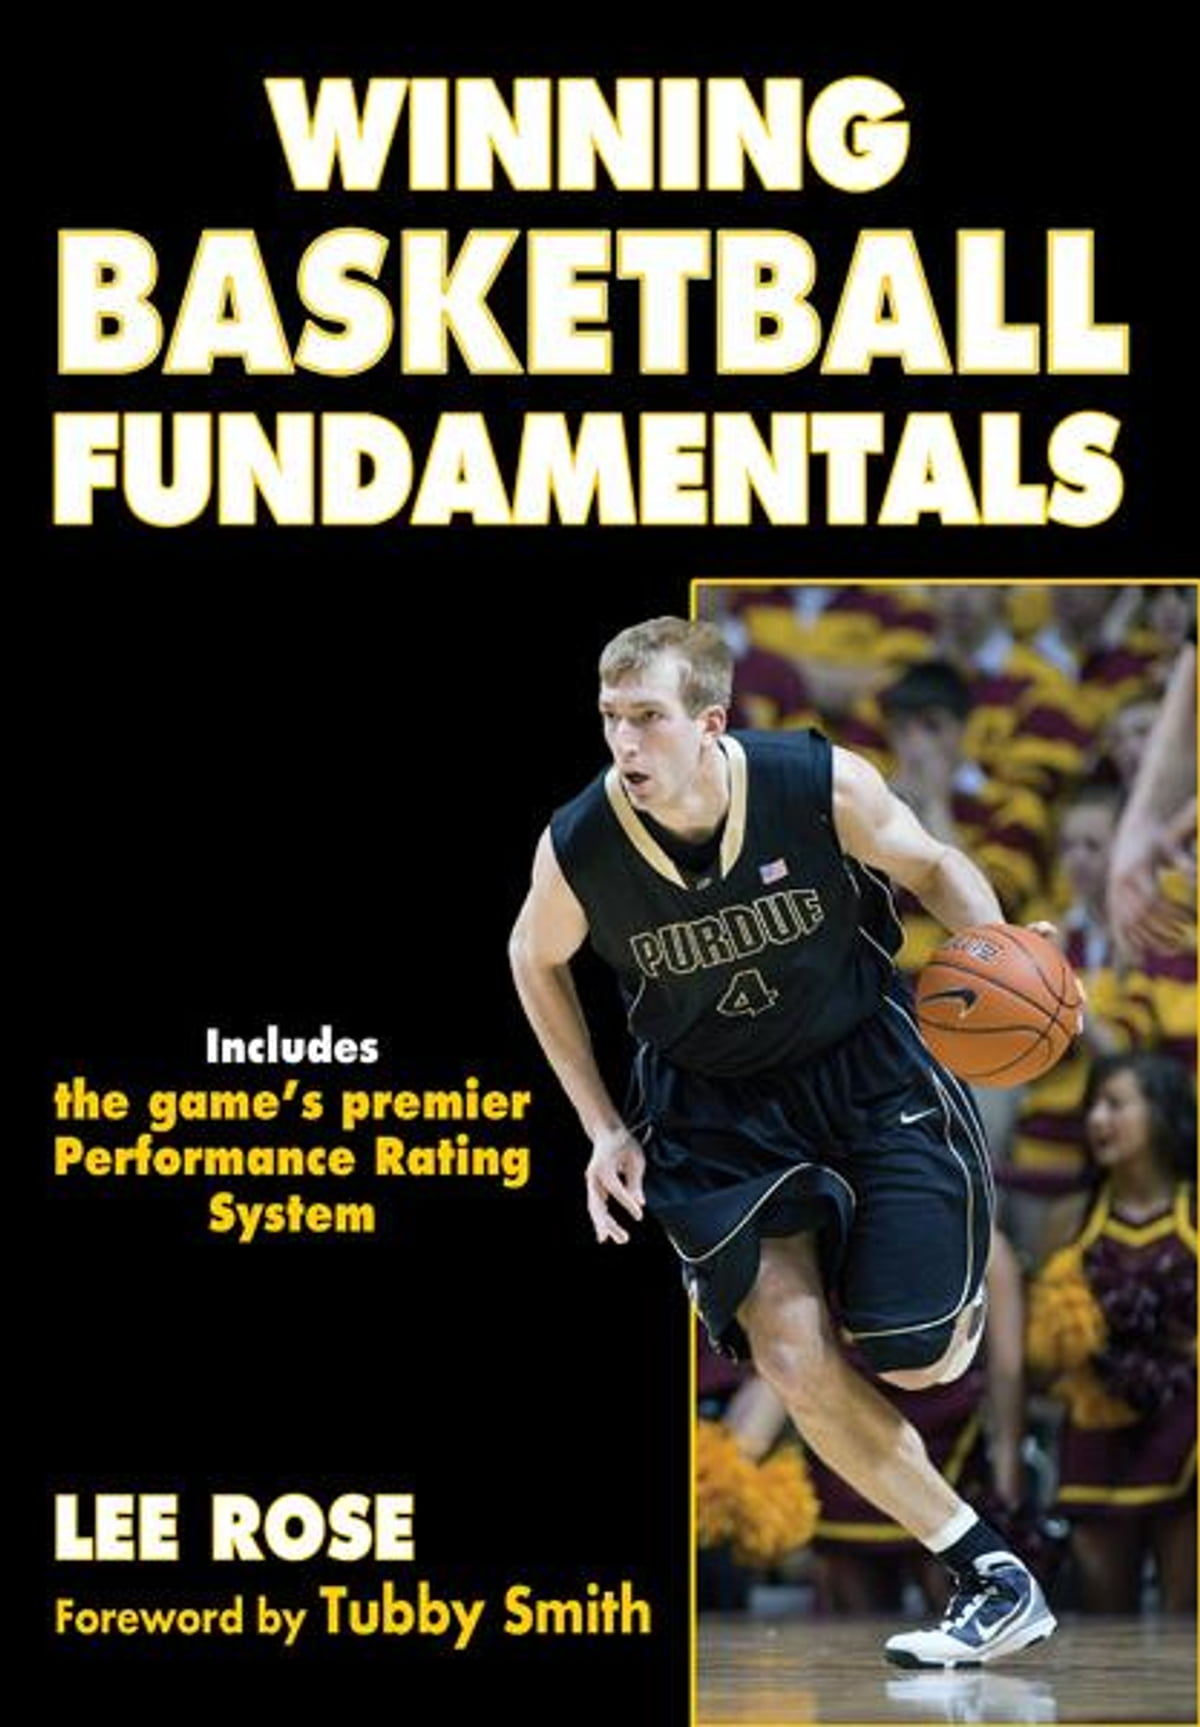 Winning Basketball Fundamentals eBook by Rose - 9781450441384 | Rakuten Kobo